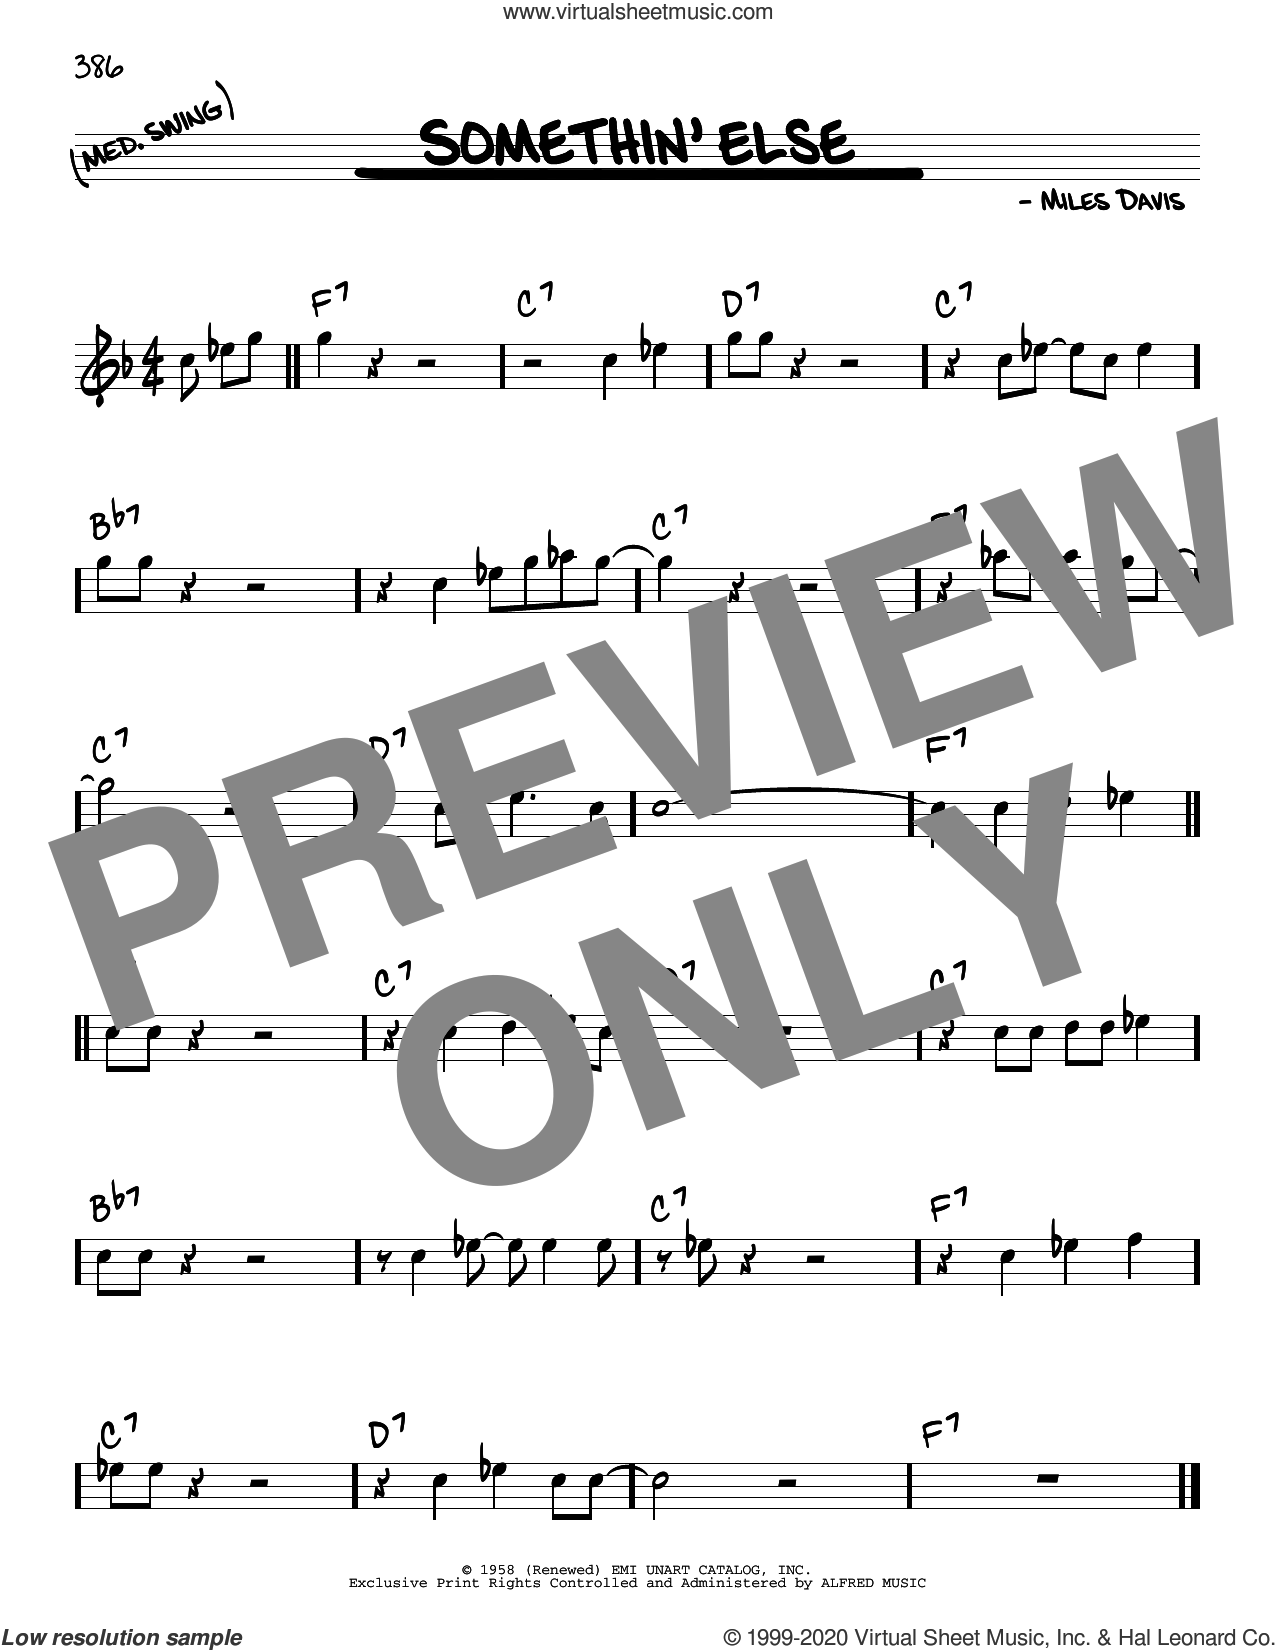 Somethin' Else sheet music for voice and other instruments (real book) by Miles Davis, intermediate skill level